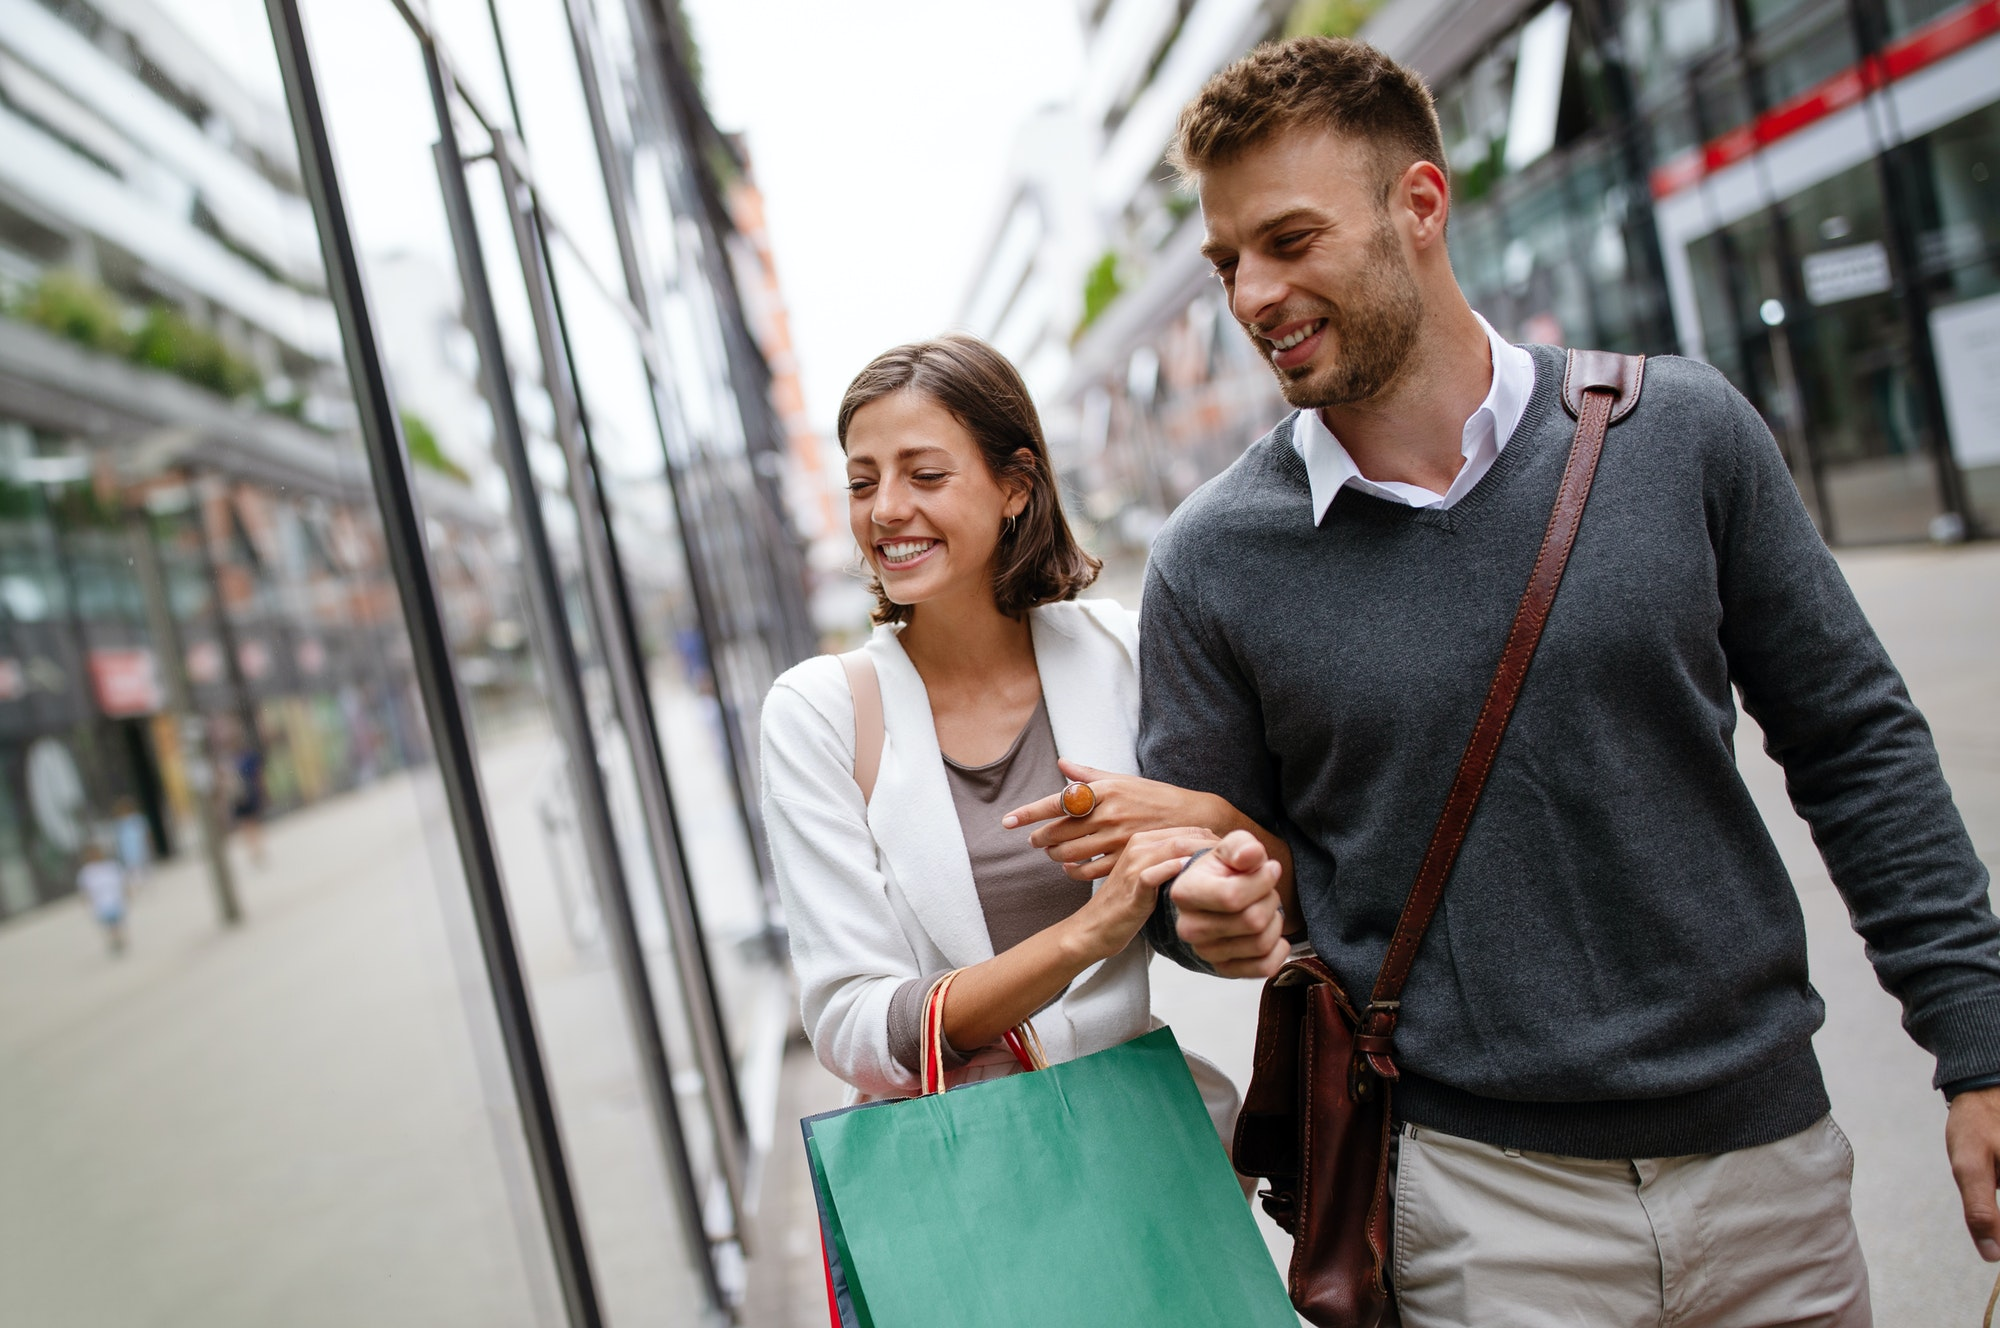 Happy couple with shopping bags. Sale, travel, love consumerism and people concept